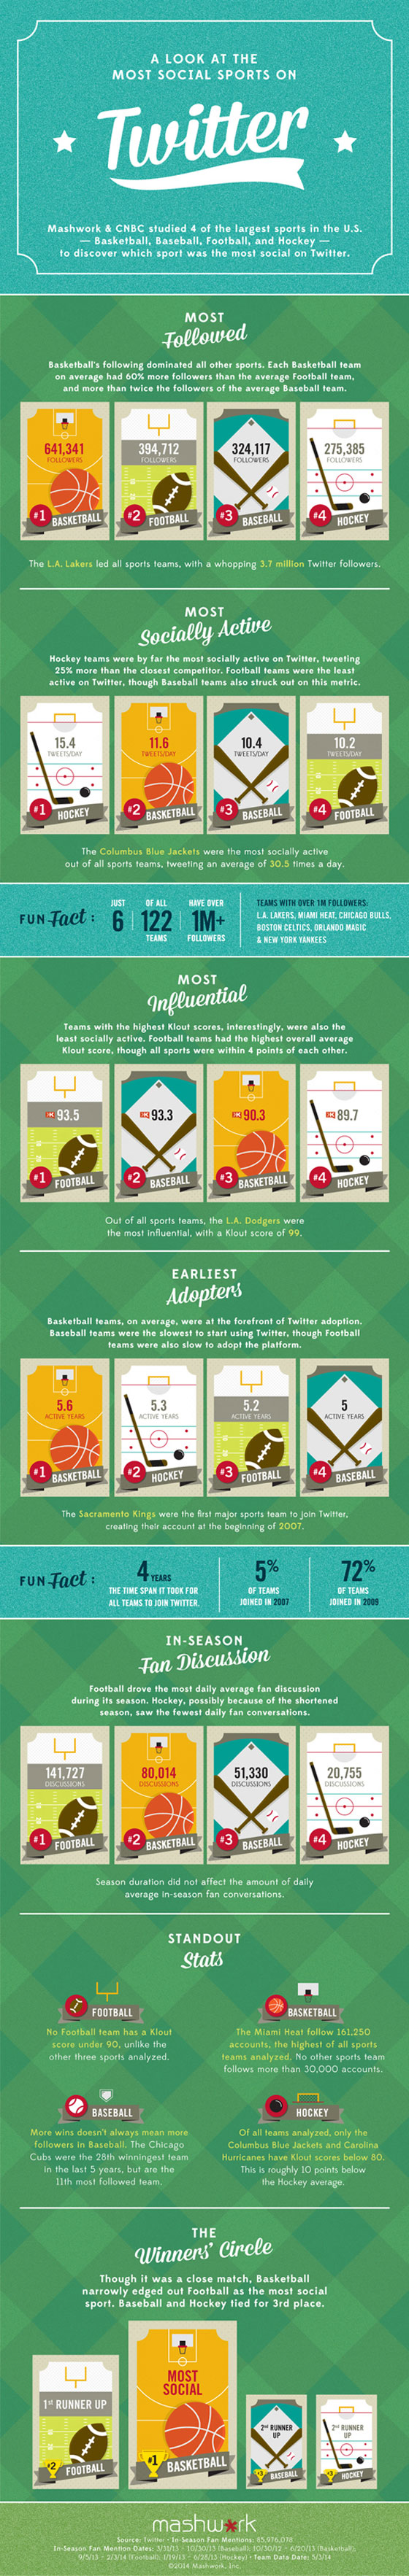 Twitter Sports Leagues infographic